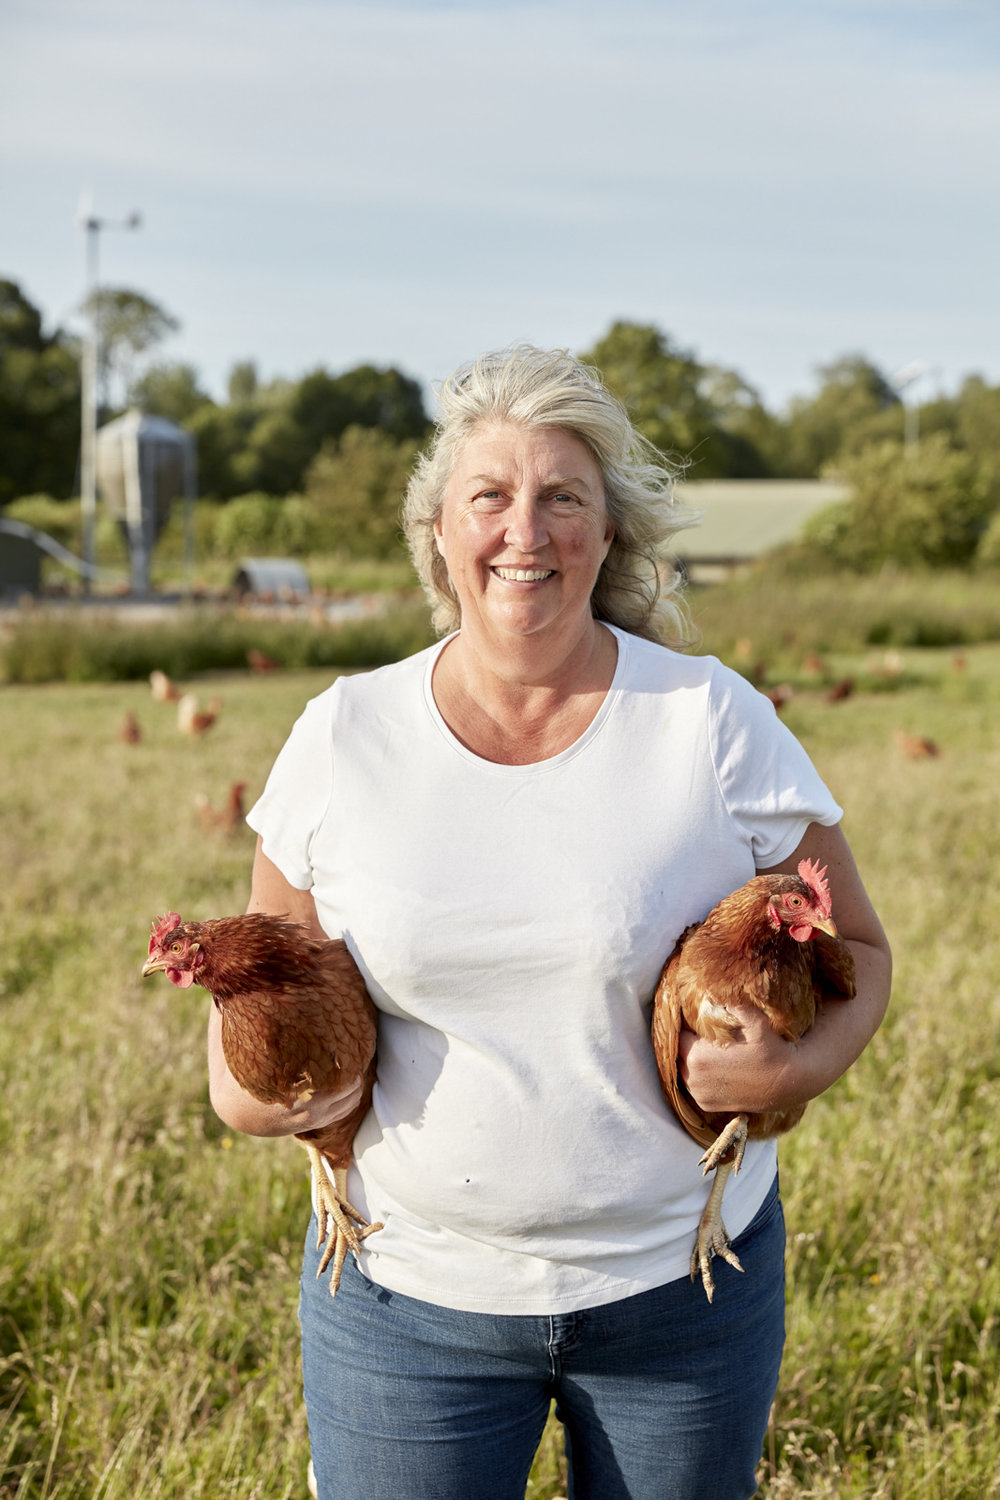 WW_LAWN_FARM_CHICKENS_001.jpg